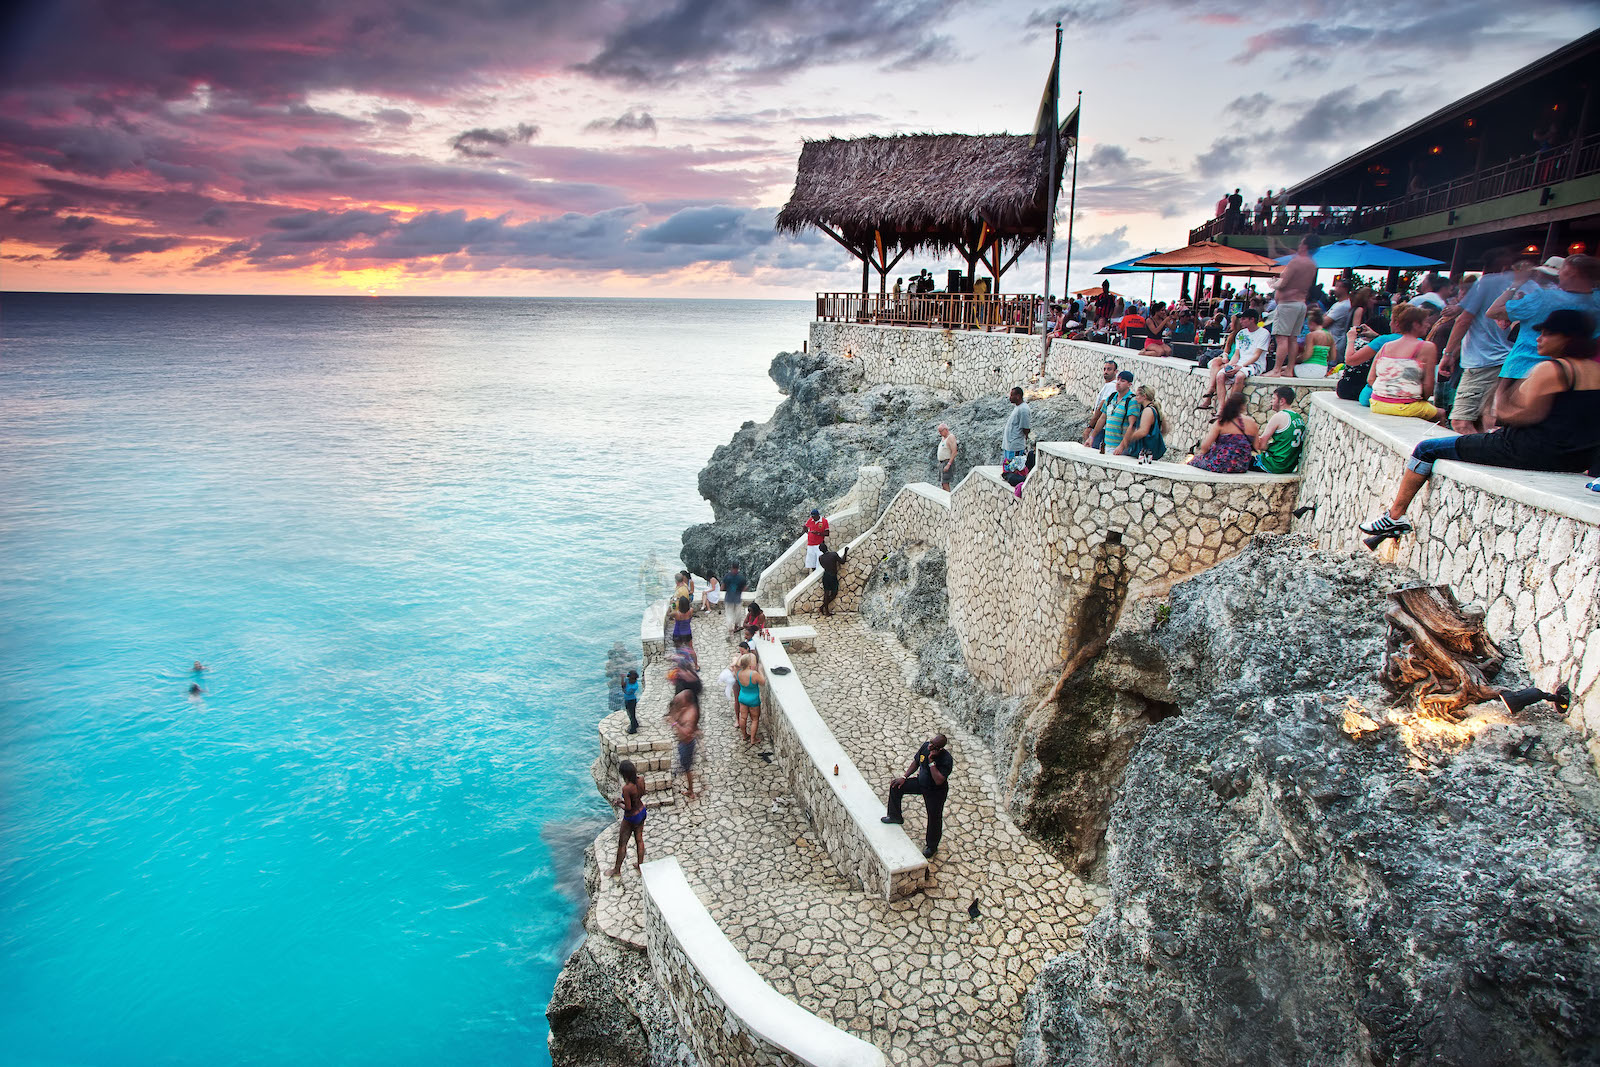 Ricks Cafe Sunset, Jamaica